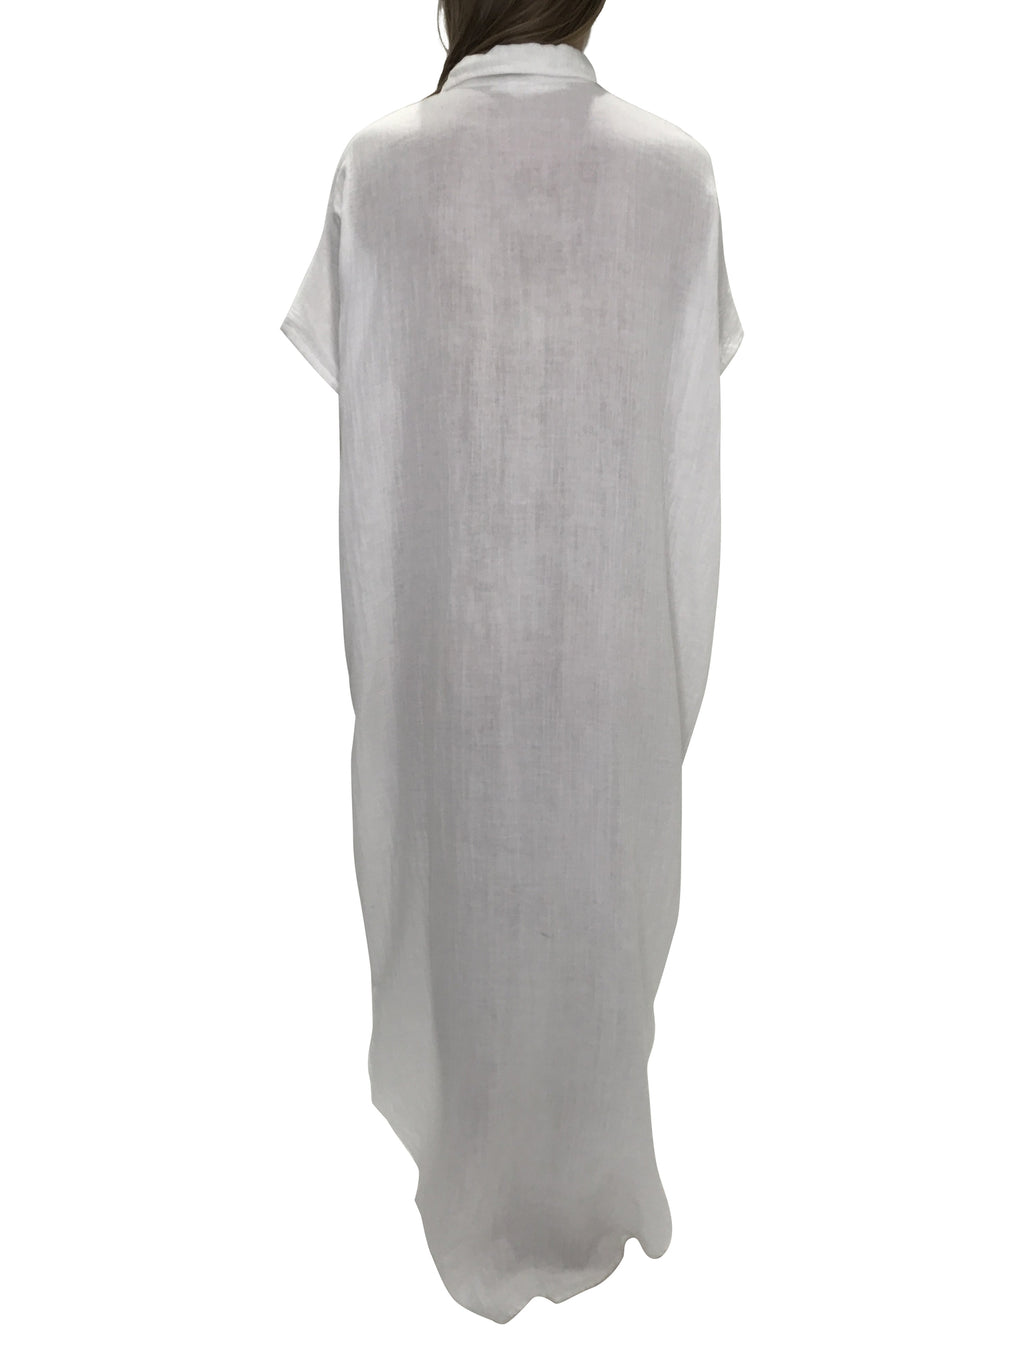 ACACIA Oahu Dress | White Wash